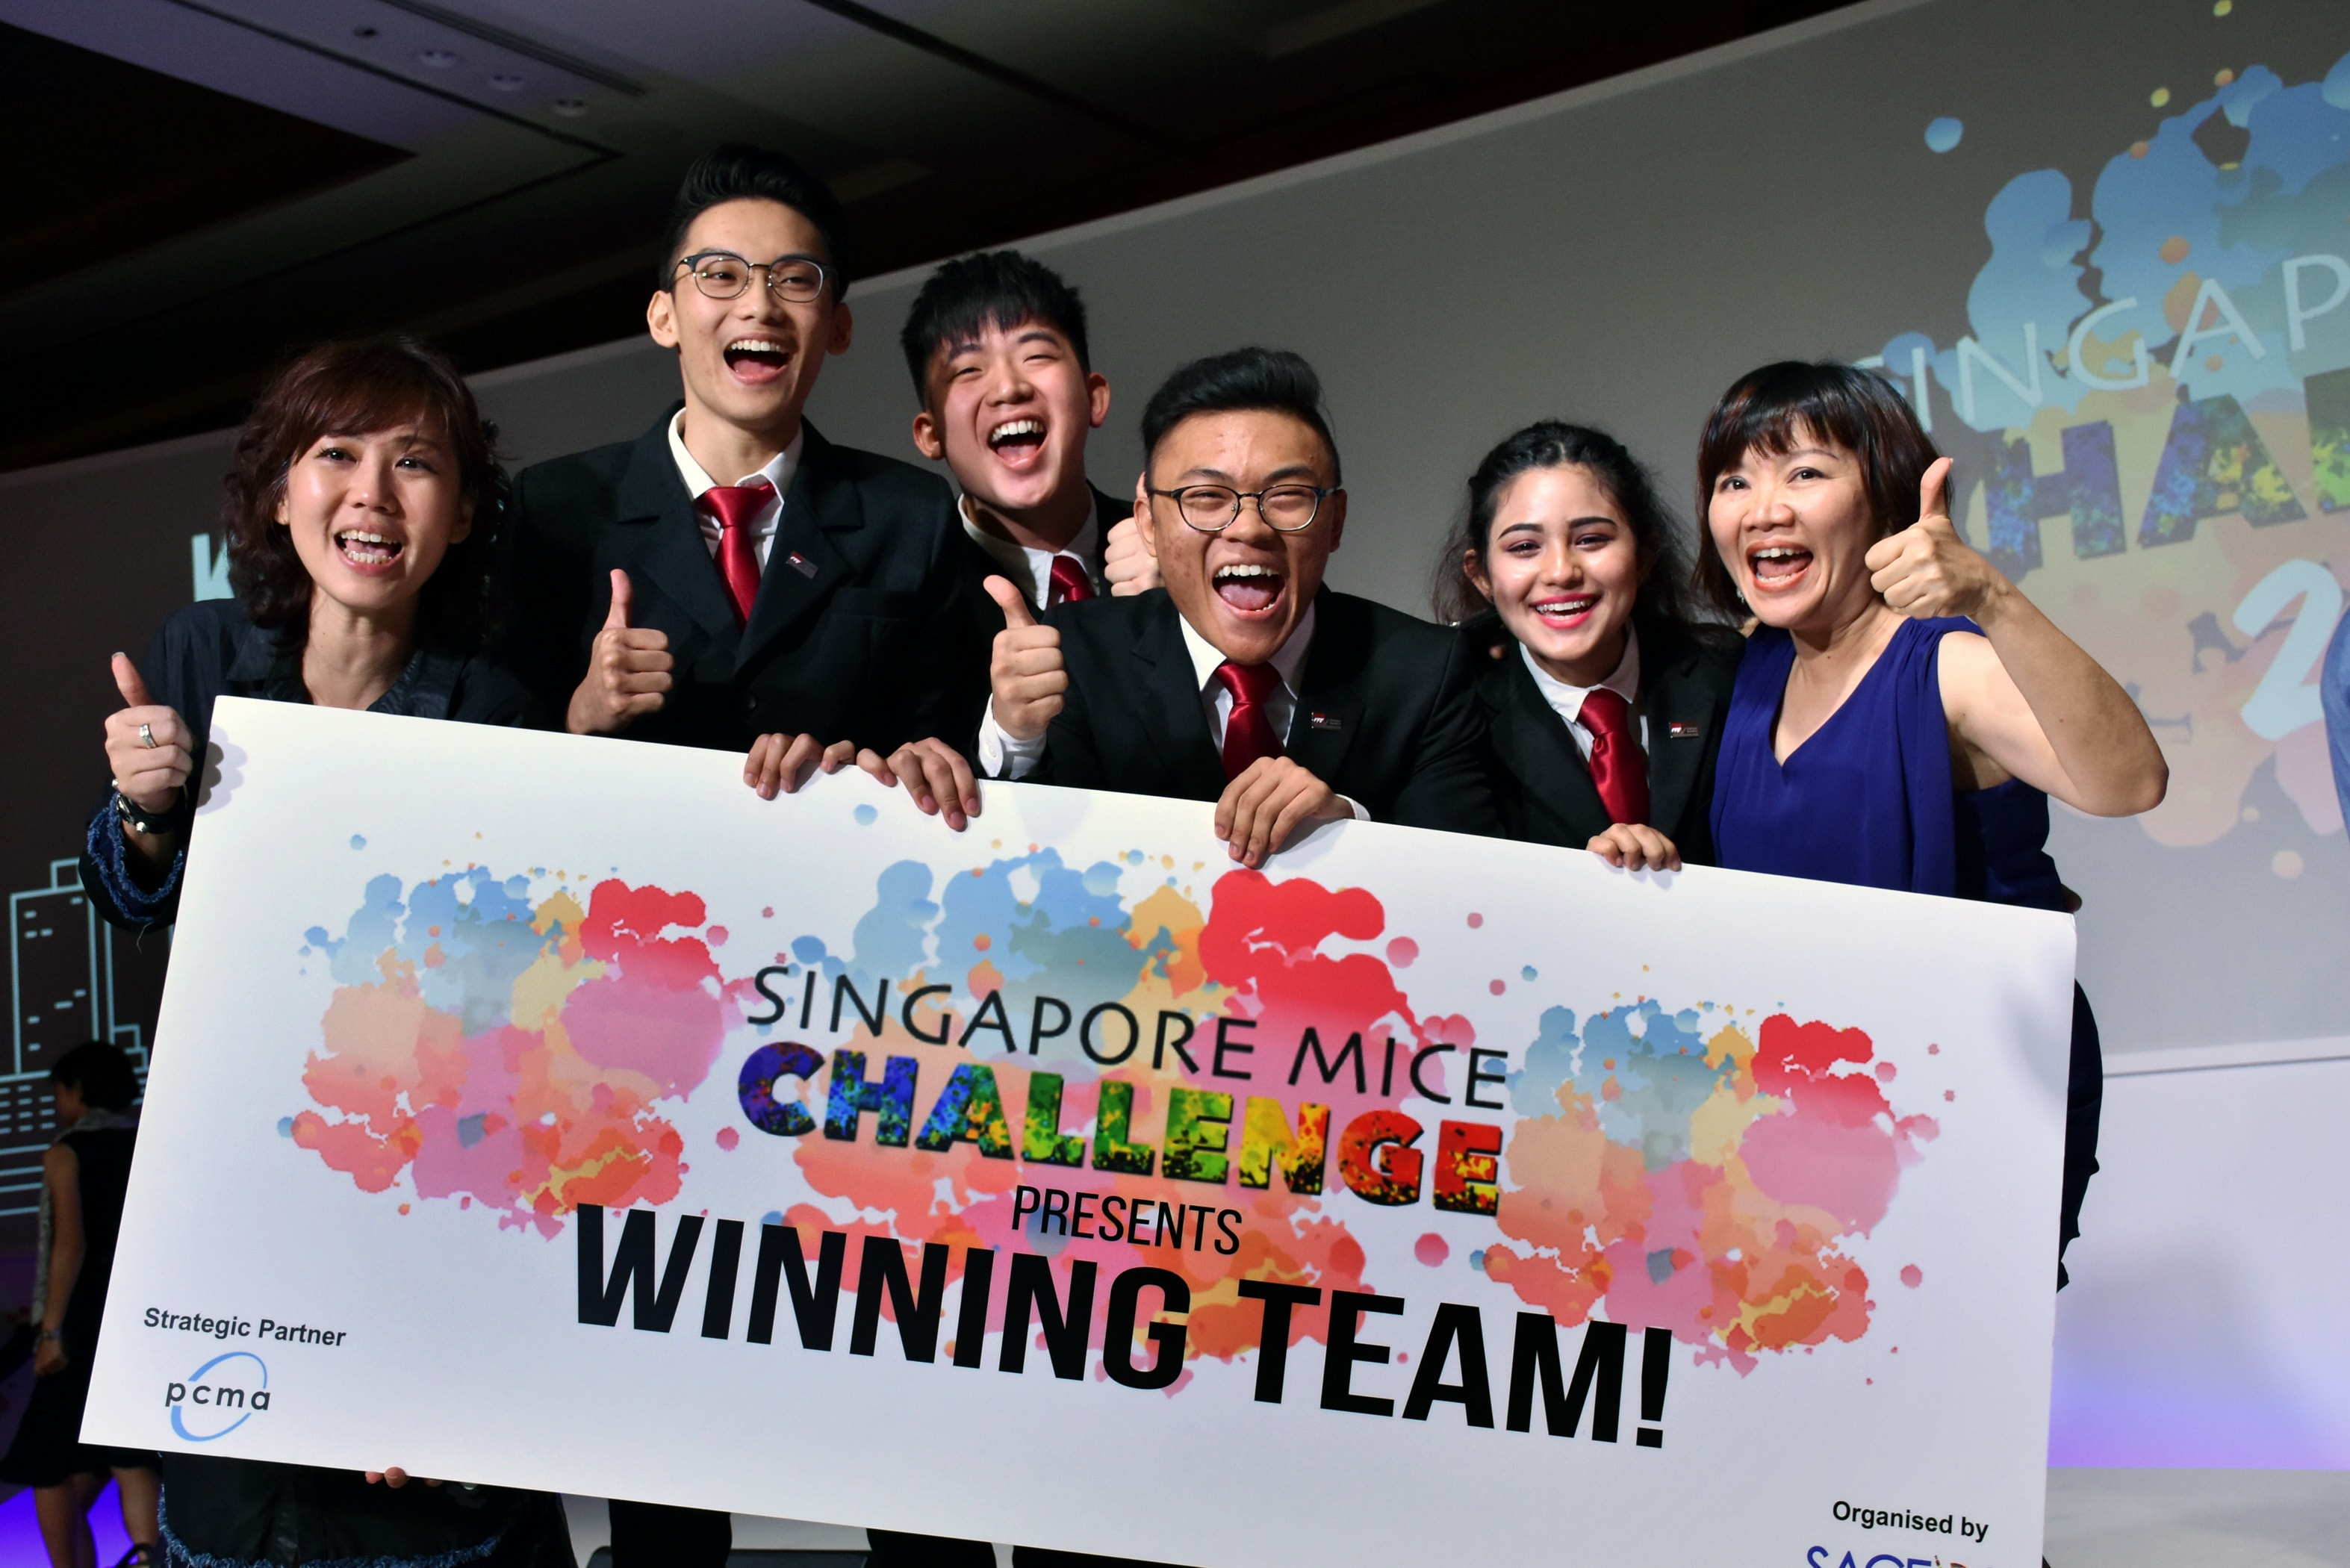 SACEOS | Singapore MICE Challenge (SMC)